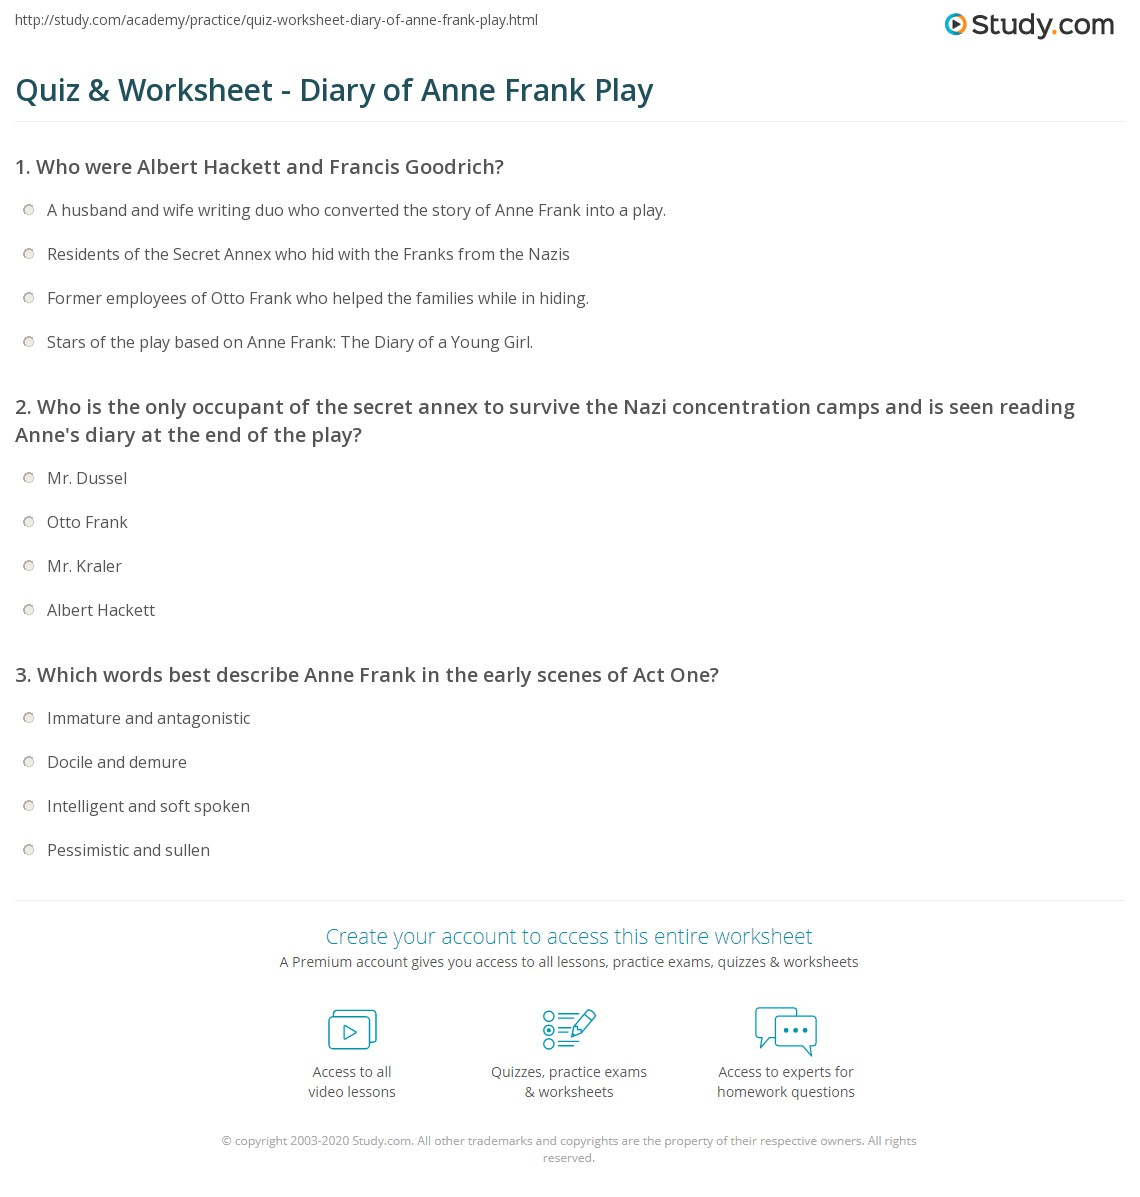 Printables Diary Of Anne Frank Worksheets quiz worksheet diary of anne frank play study com print by albert hackett frances goodrich summary characters worksheet